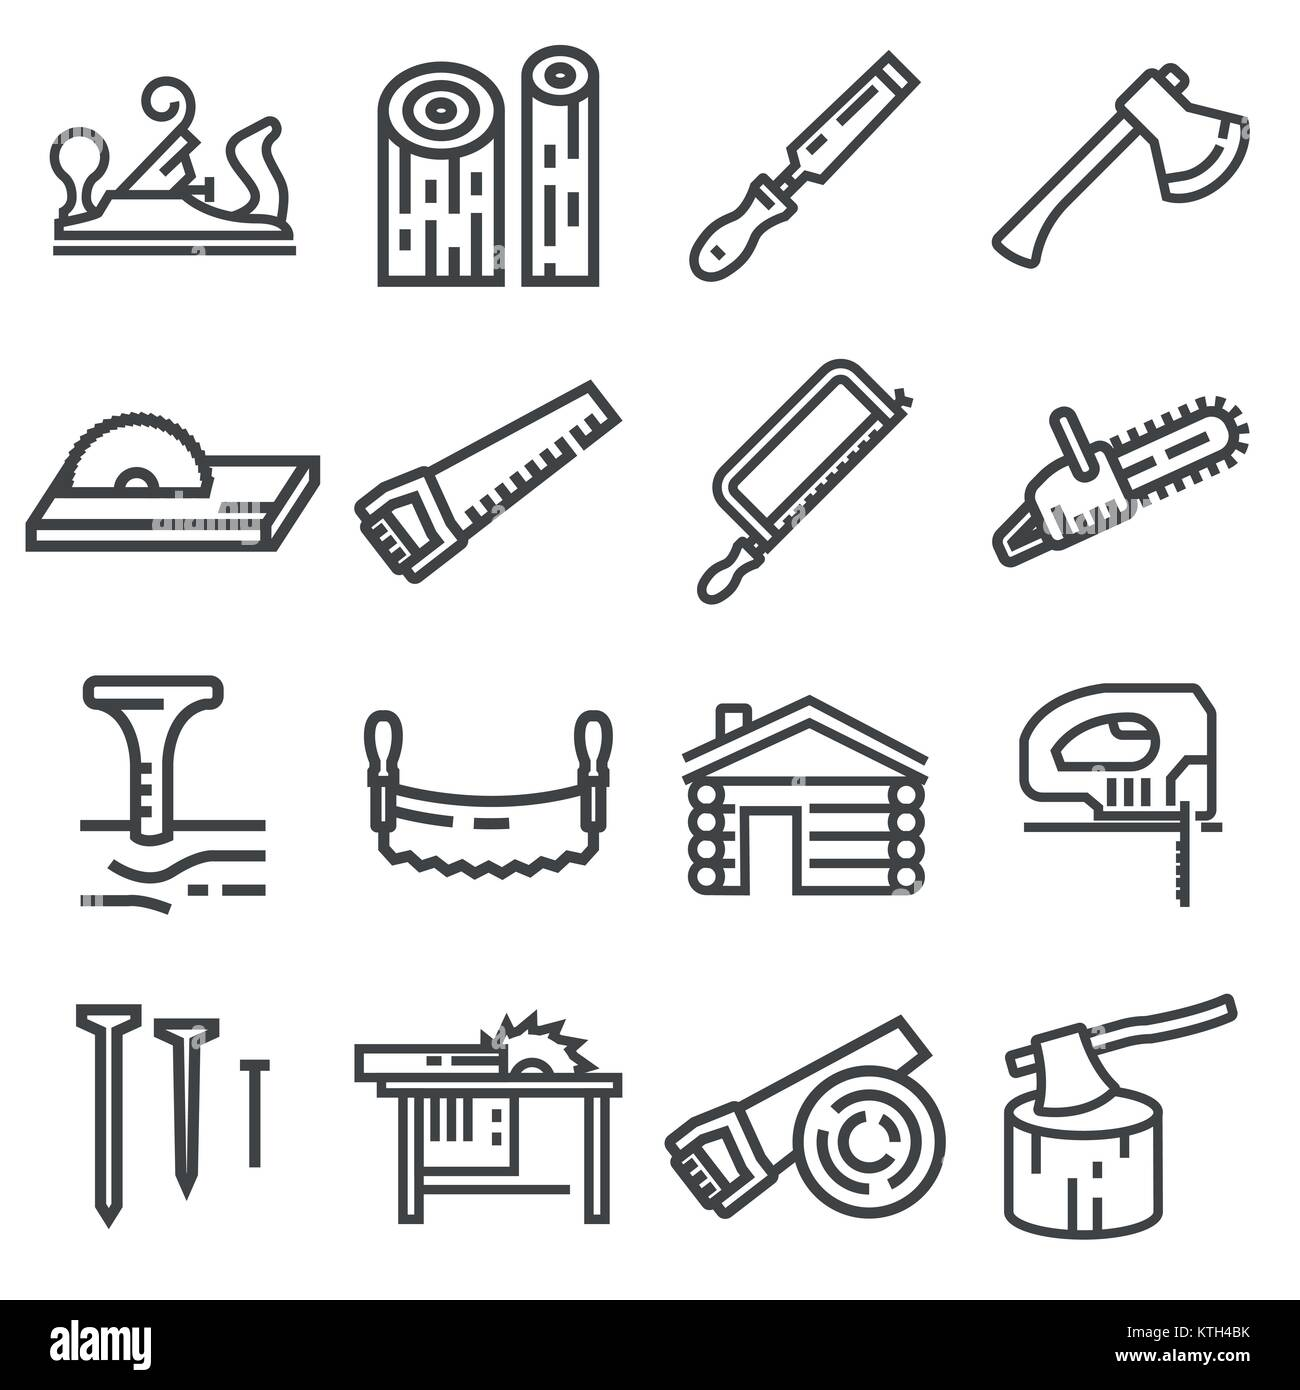 Carpentry Wood Work Tools And Equipment Line Icons Set Isolated